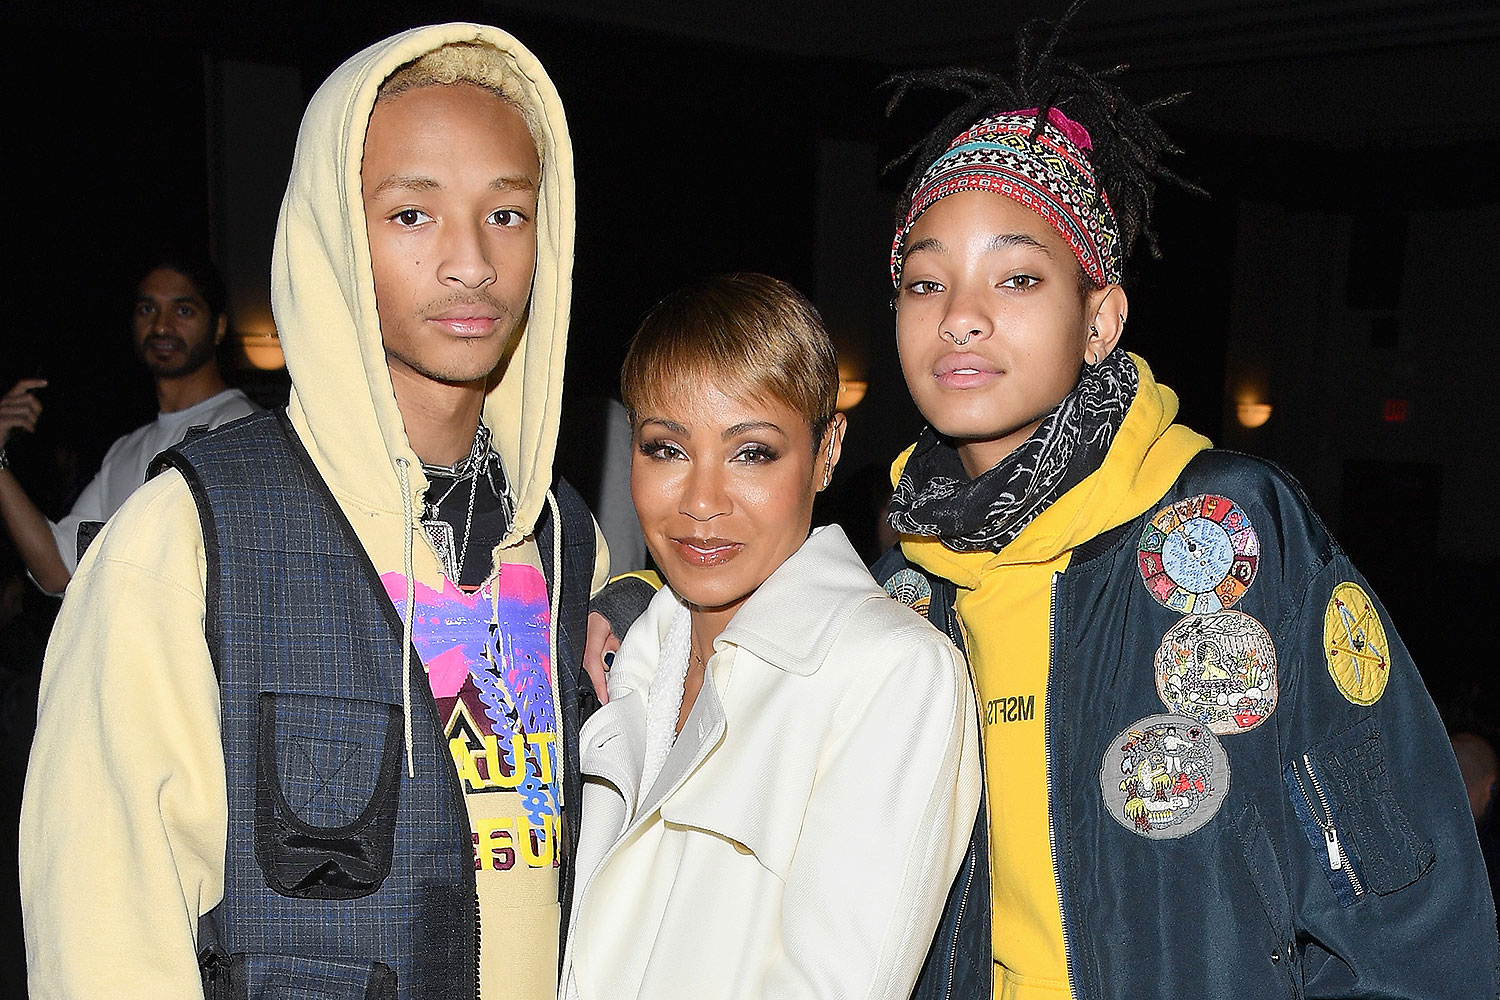 Jaden Smith, Jada Pinkett Smith and Willow Smith